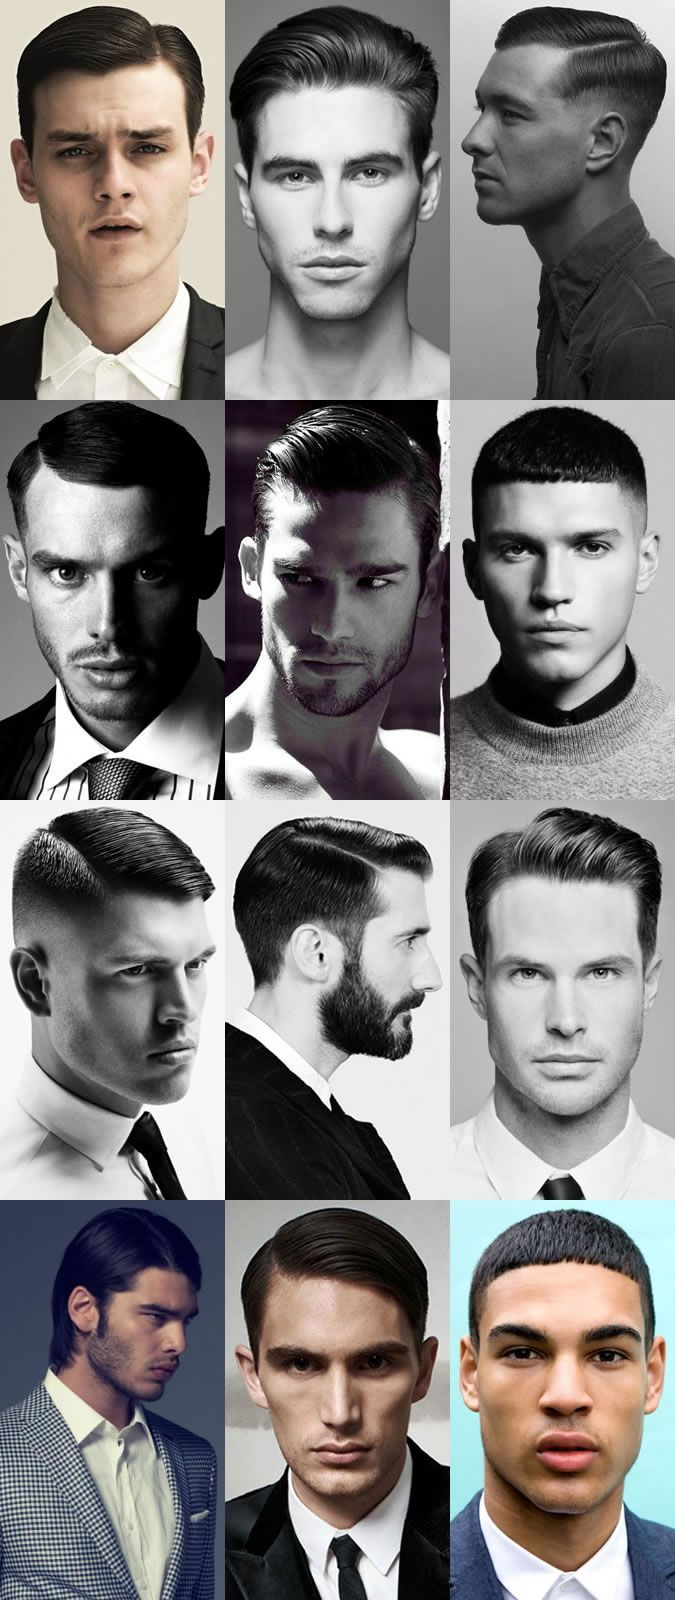 91 best gq hair images on pinterest   men's haircuts, hairstyles